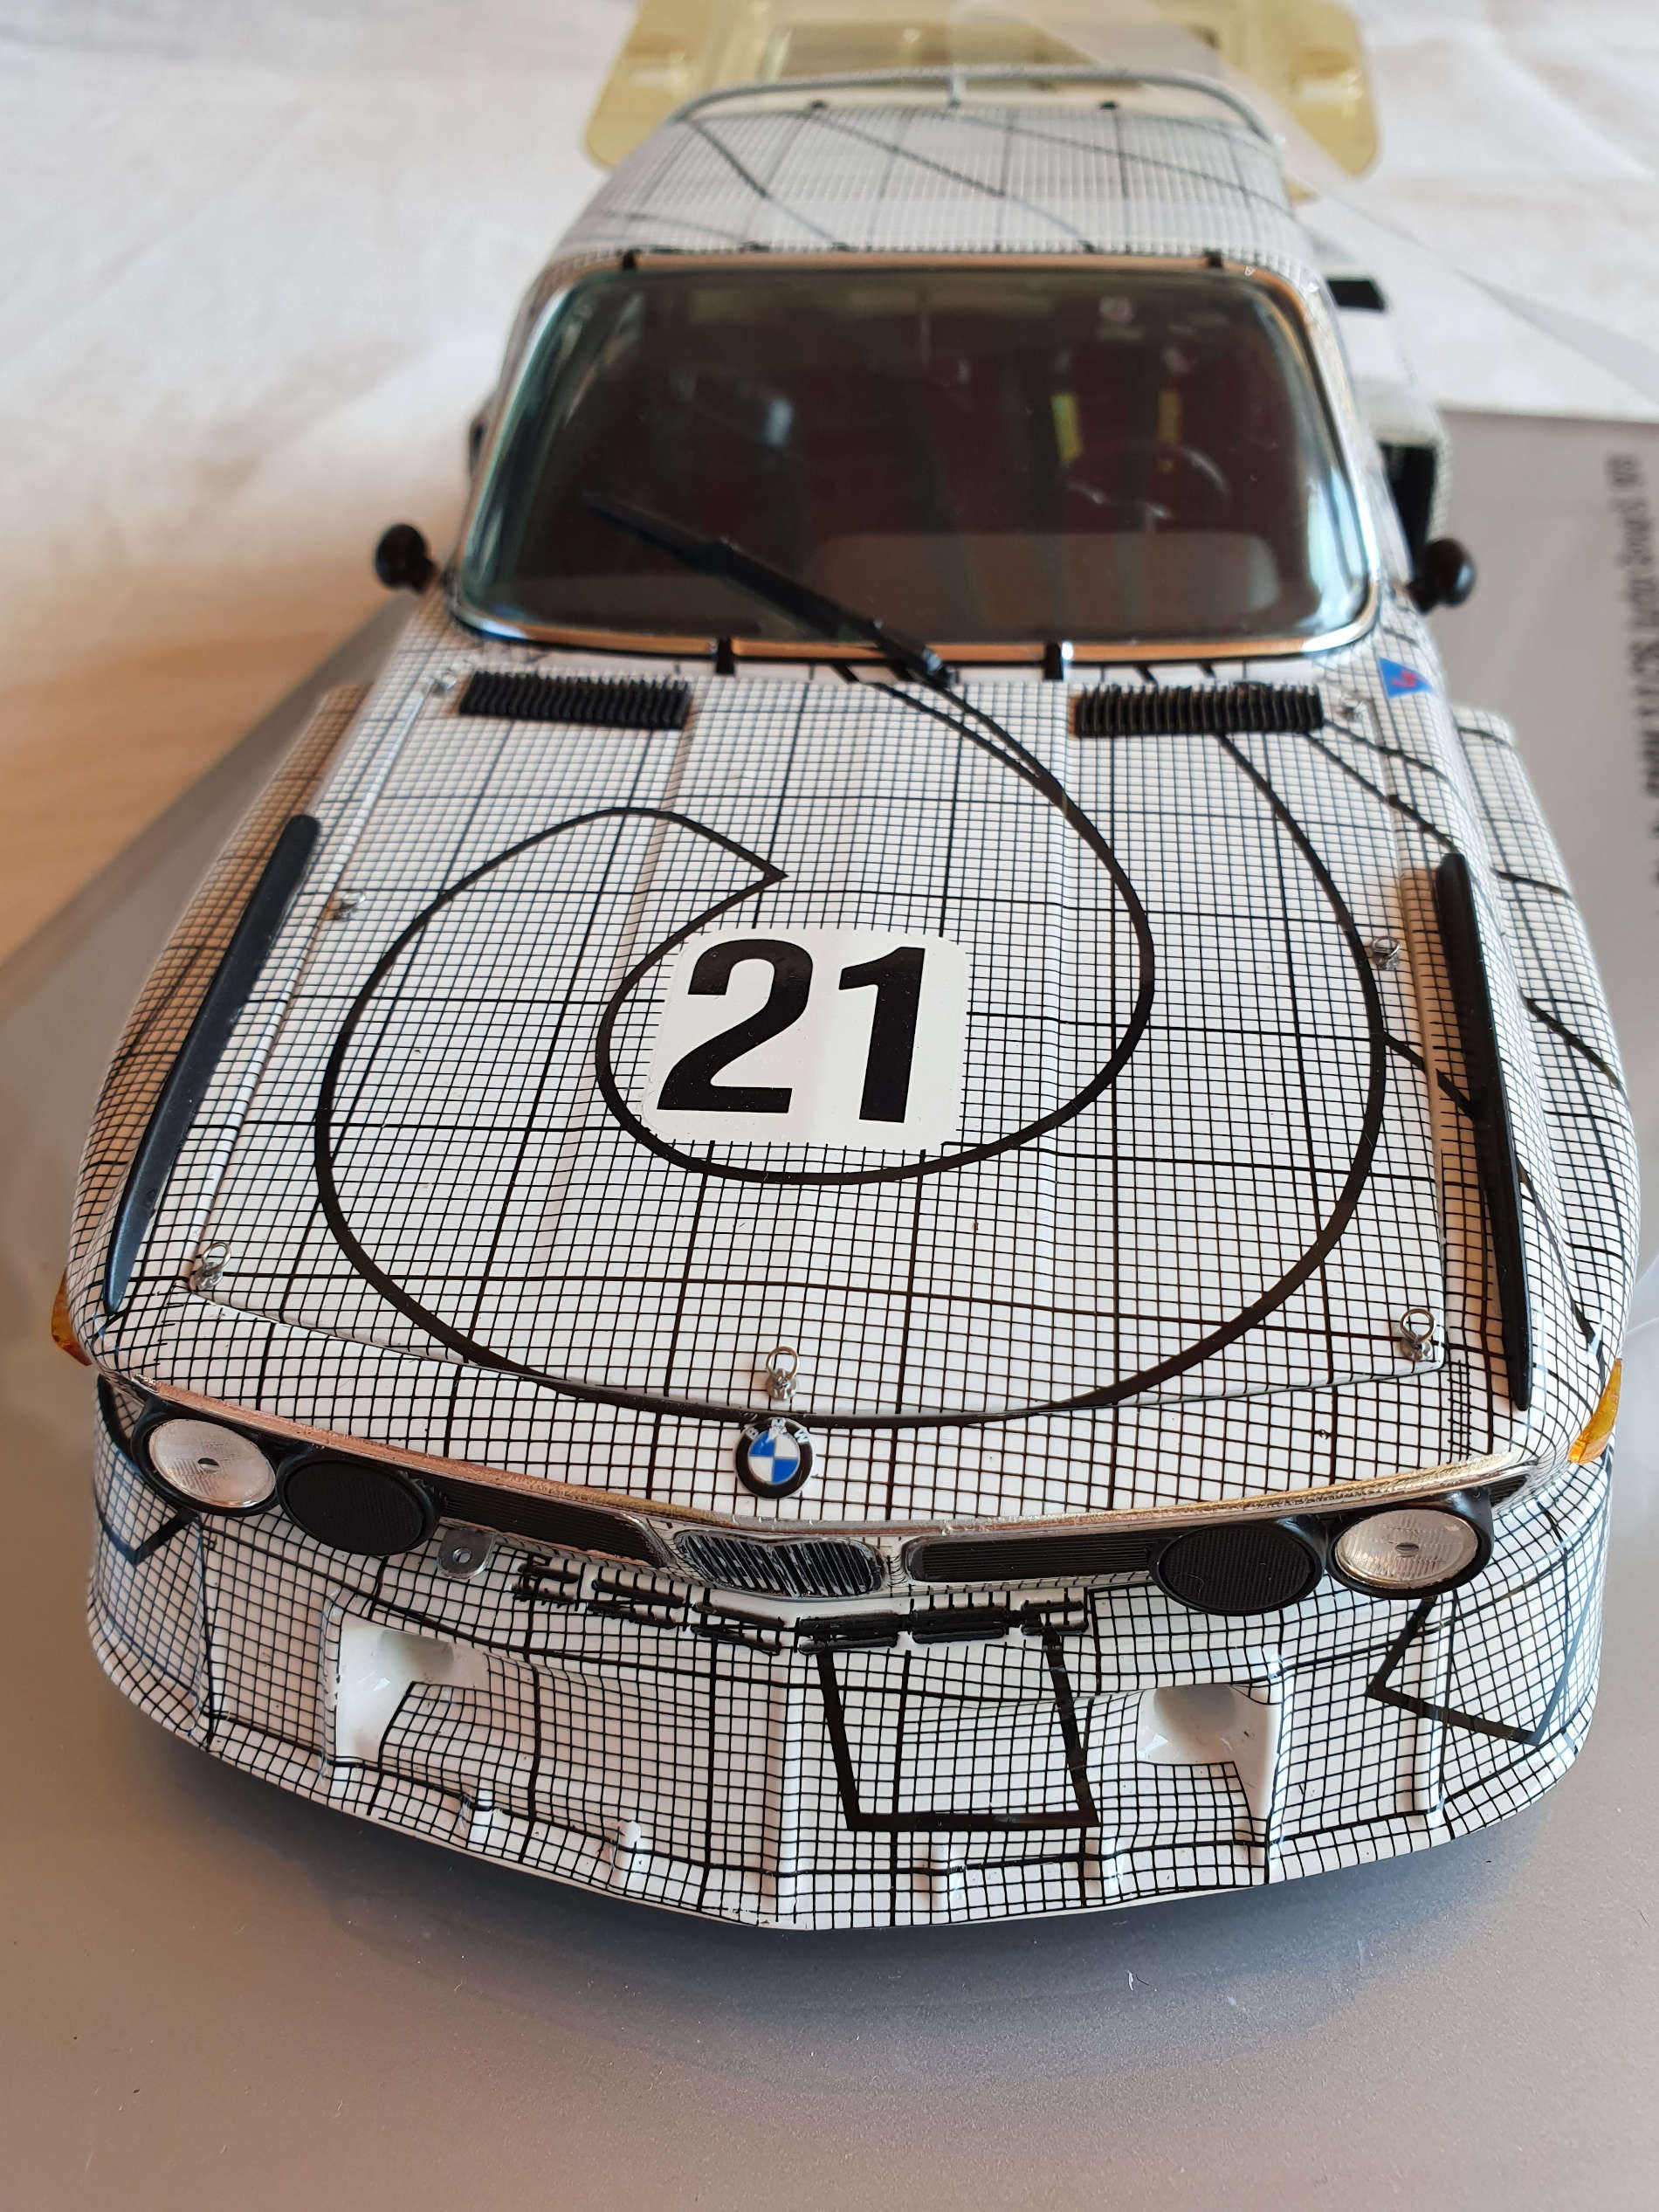 Bmw Le Mans art car